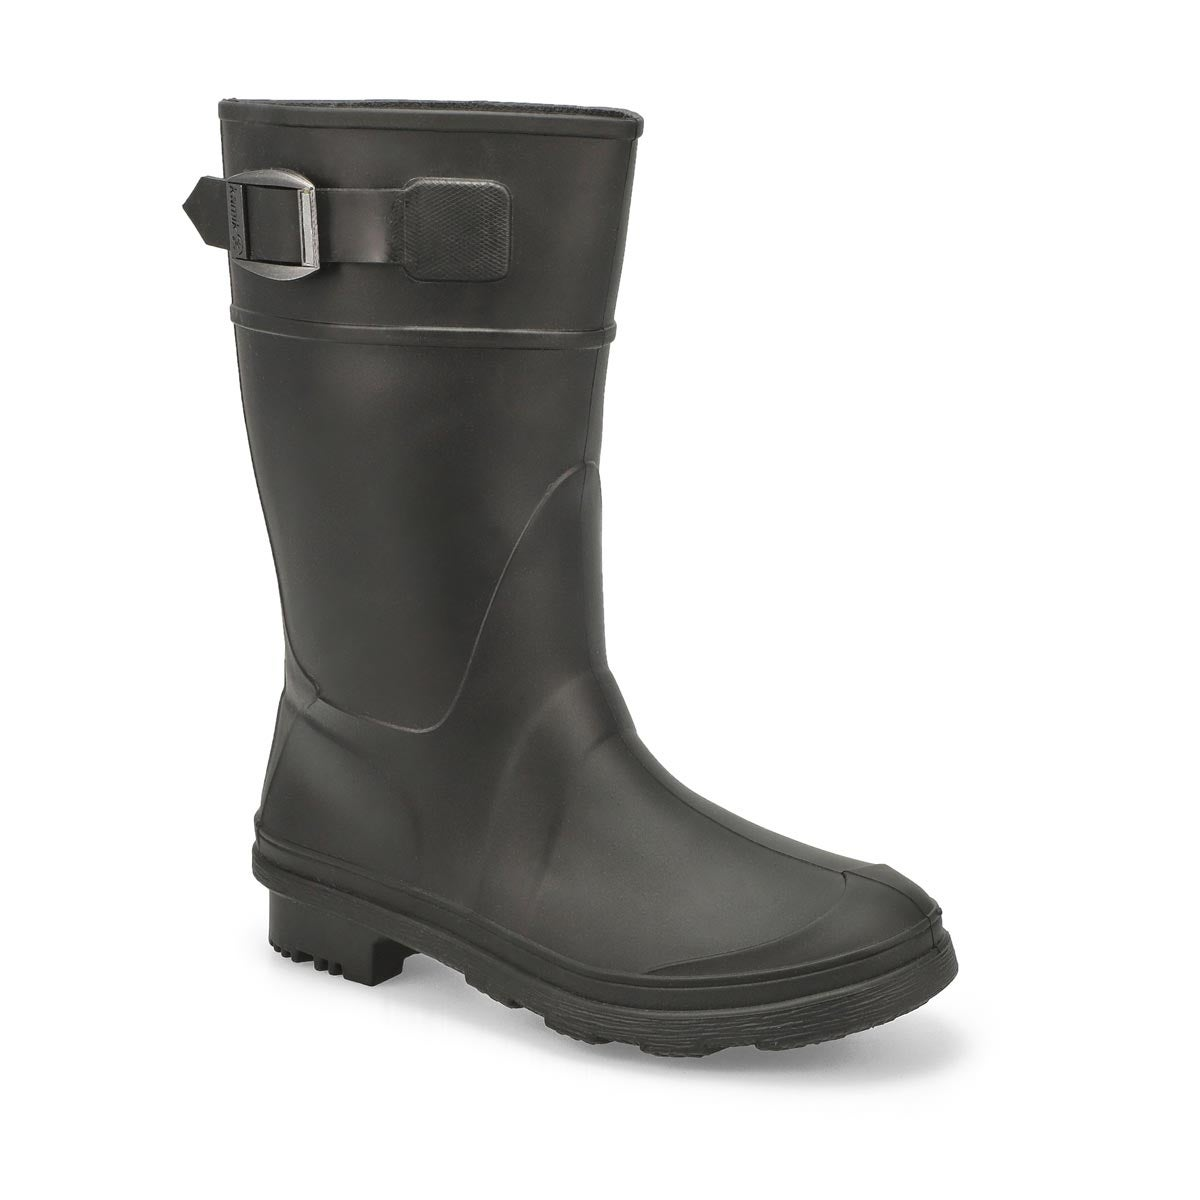 Boys' RAINDROPS black waterproof rain boots